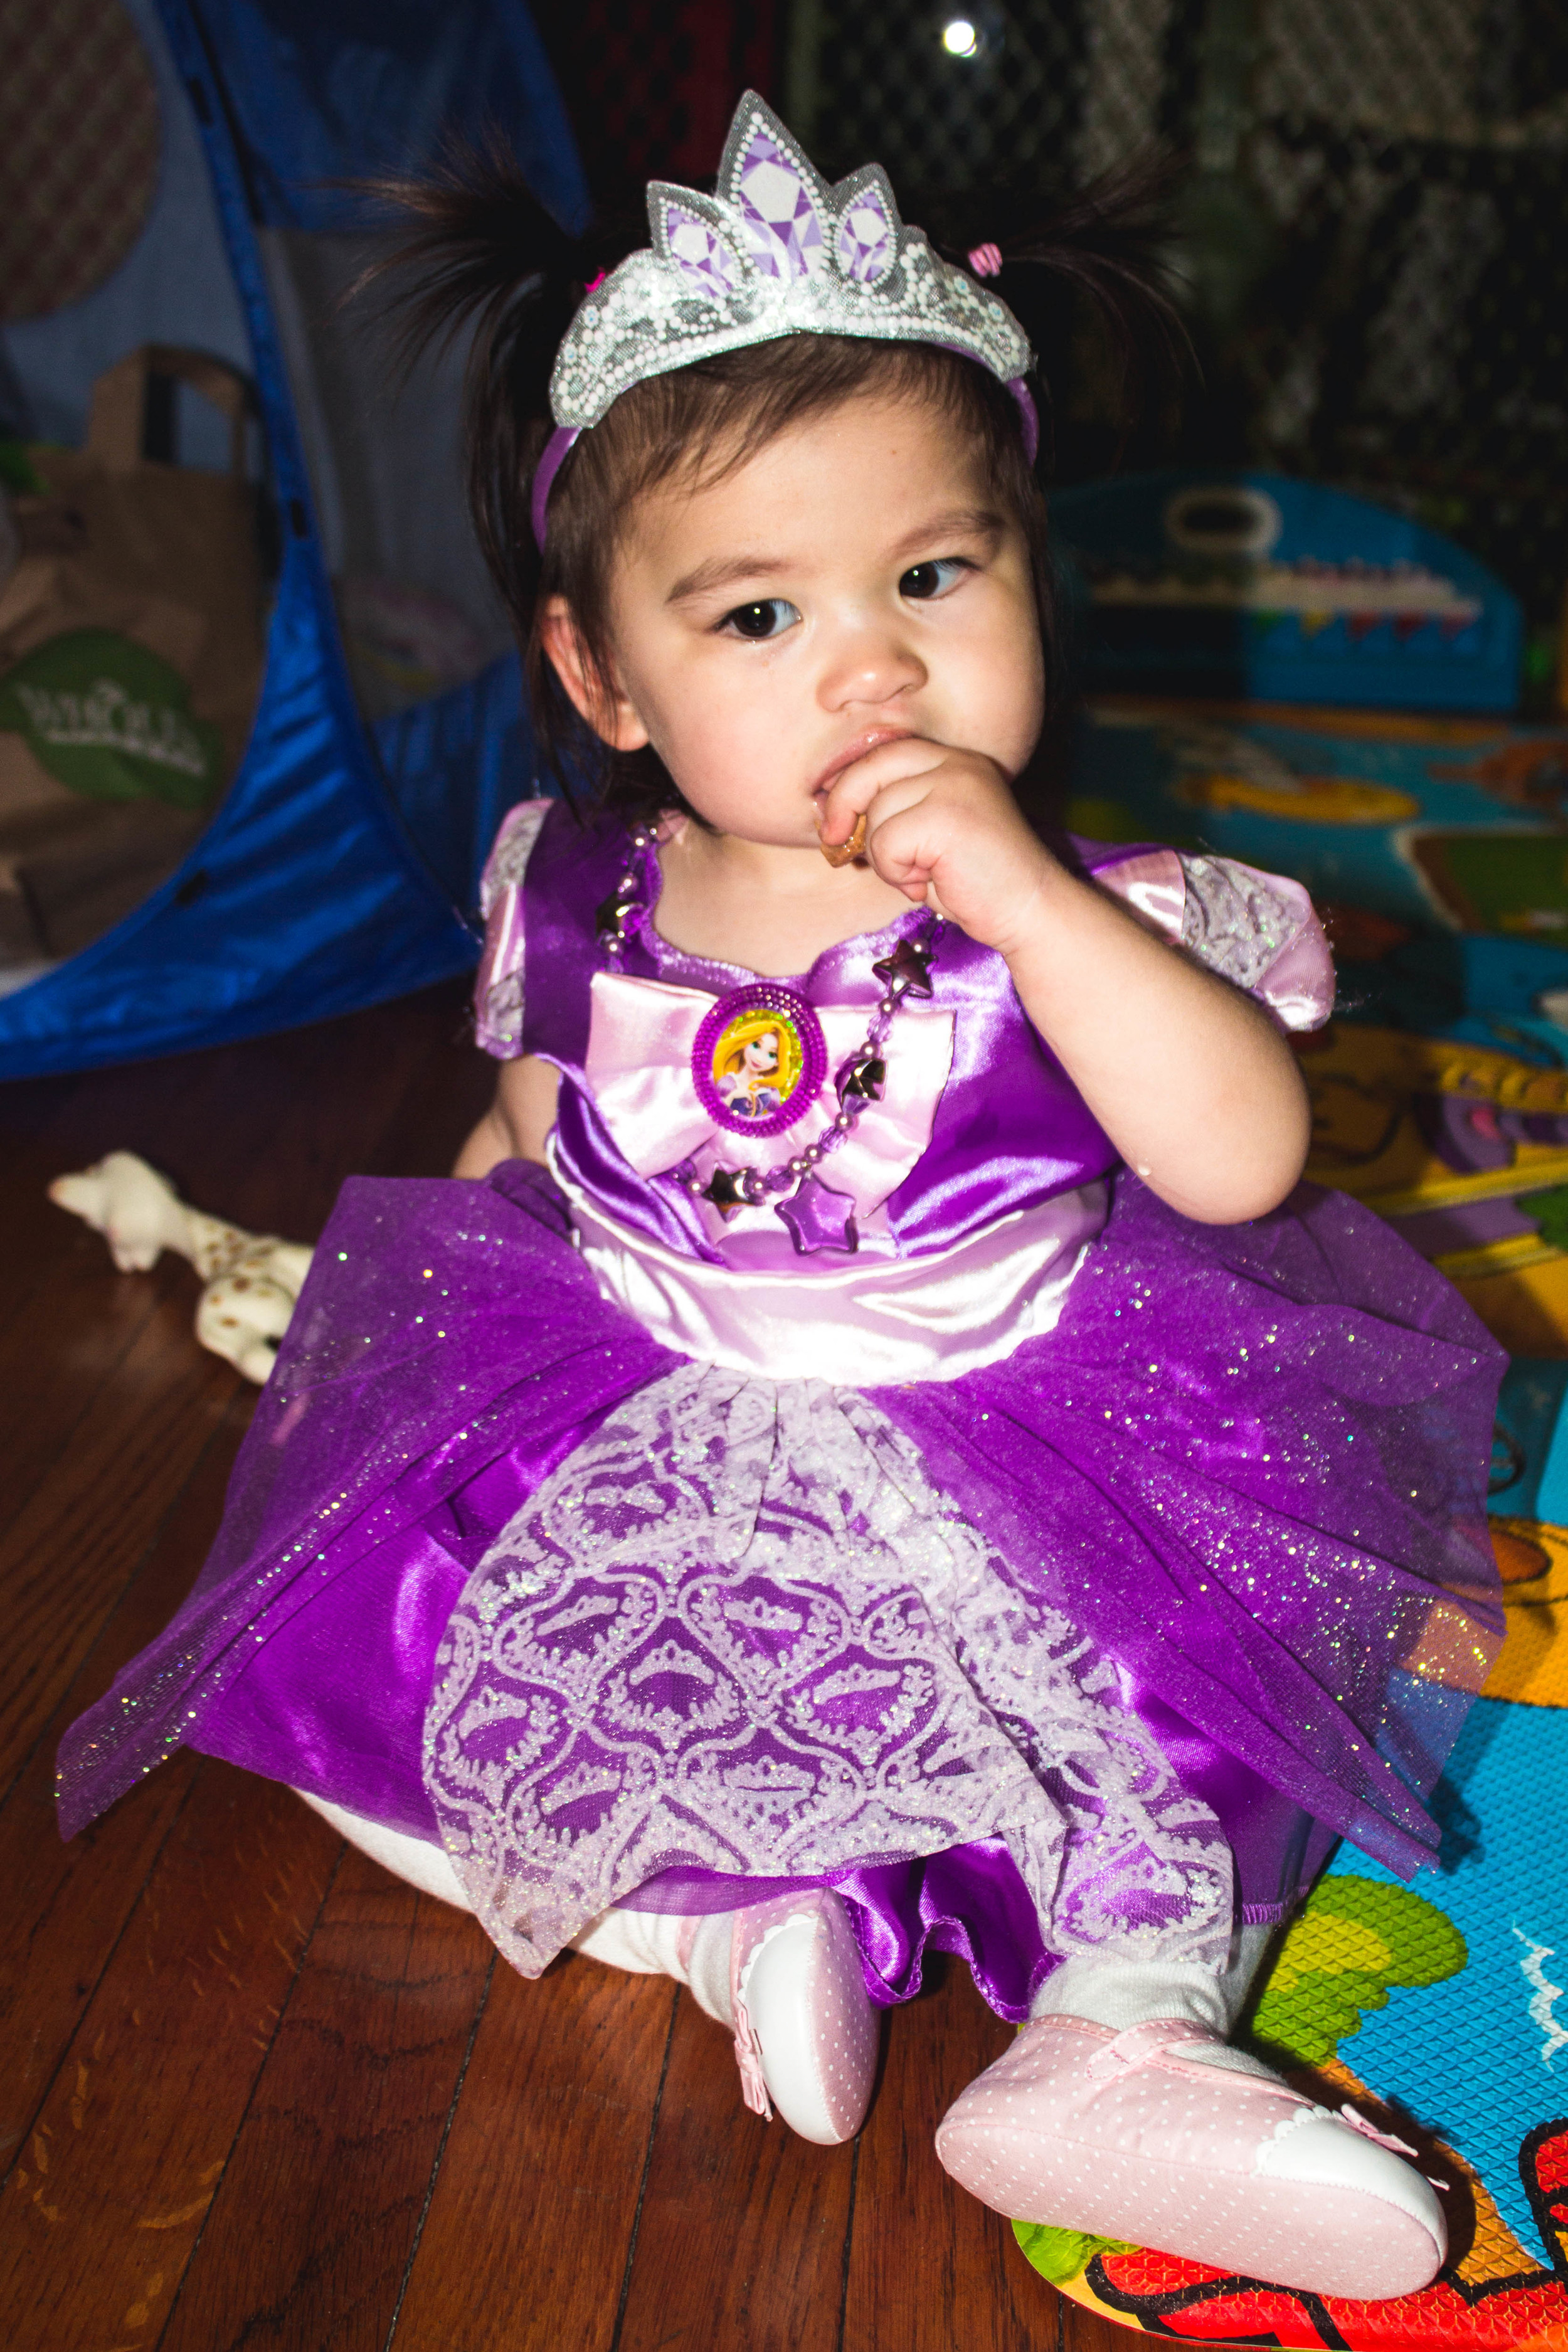 Selah's Rapunzel 2nd Halloween costume | fit for the soul